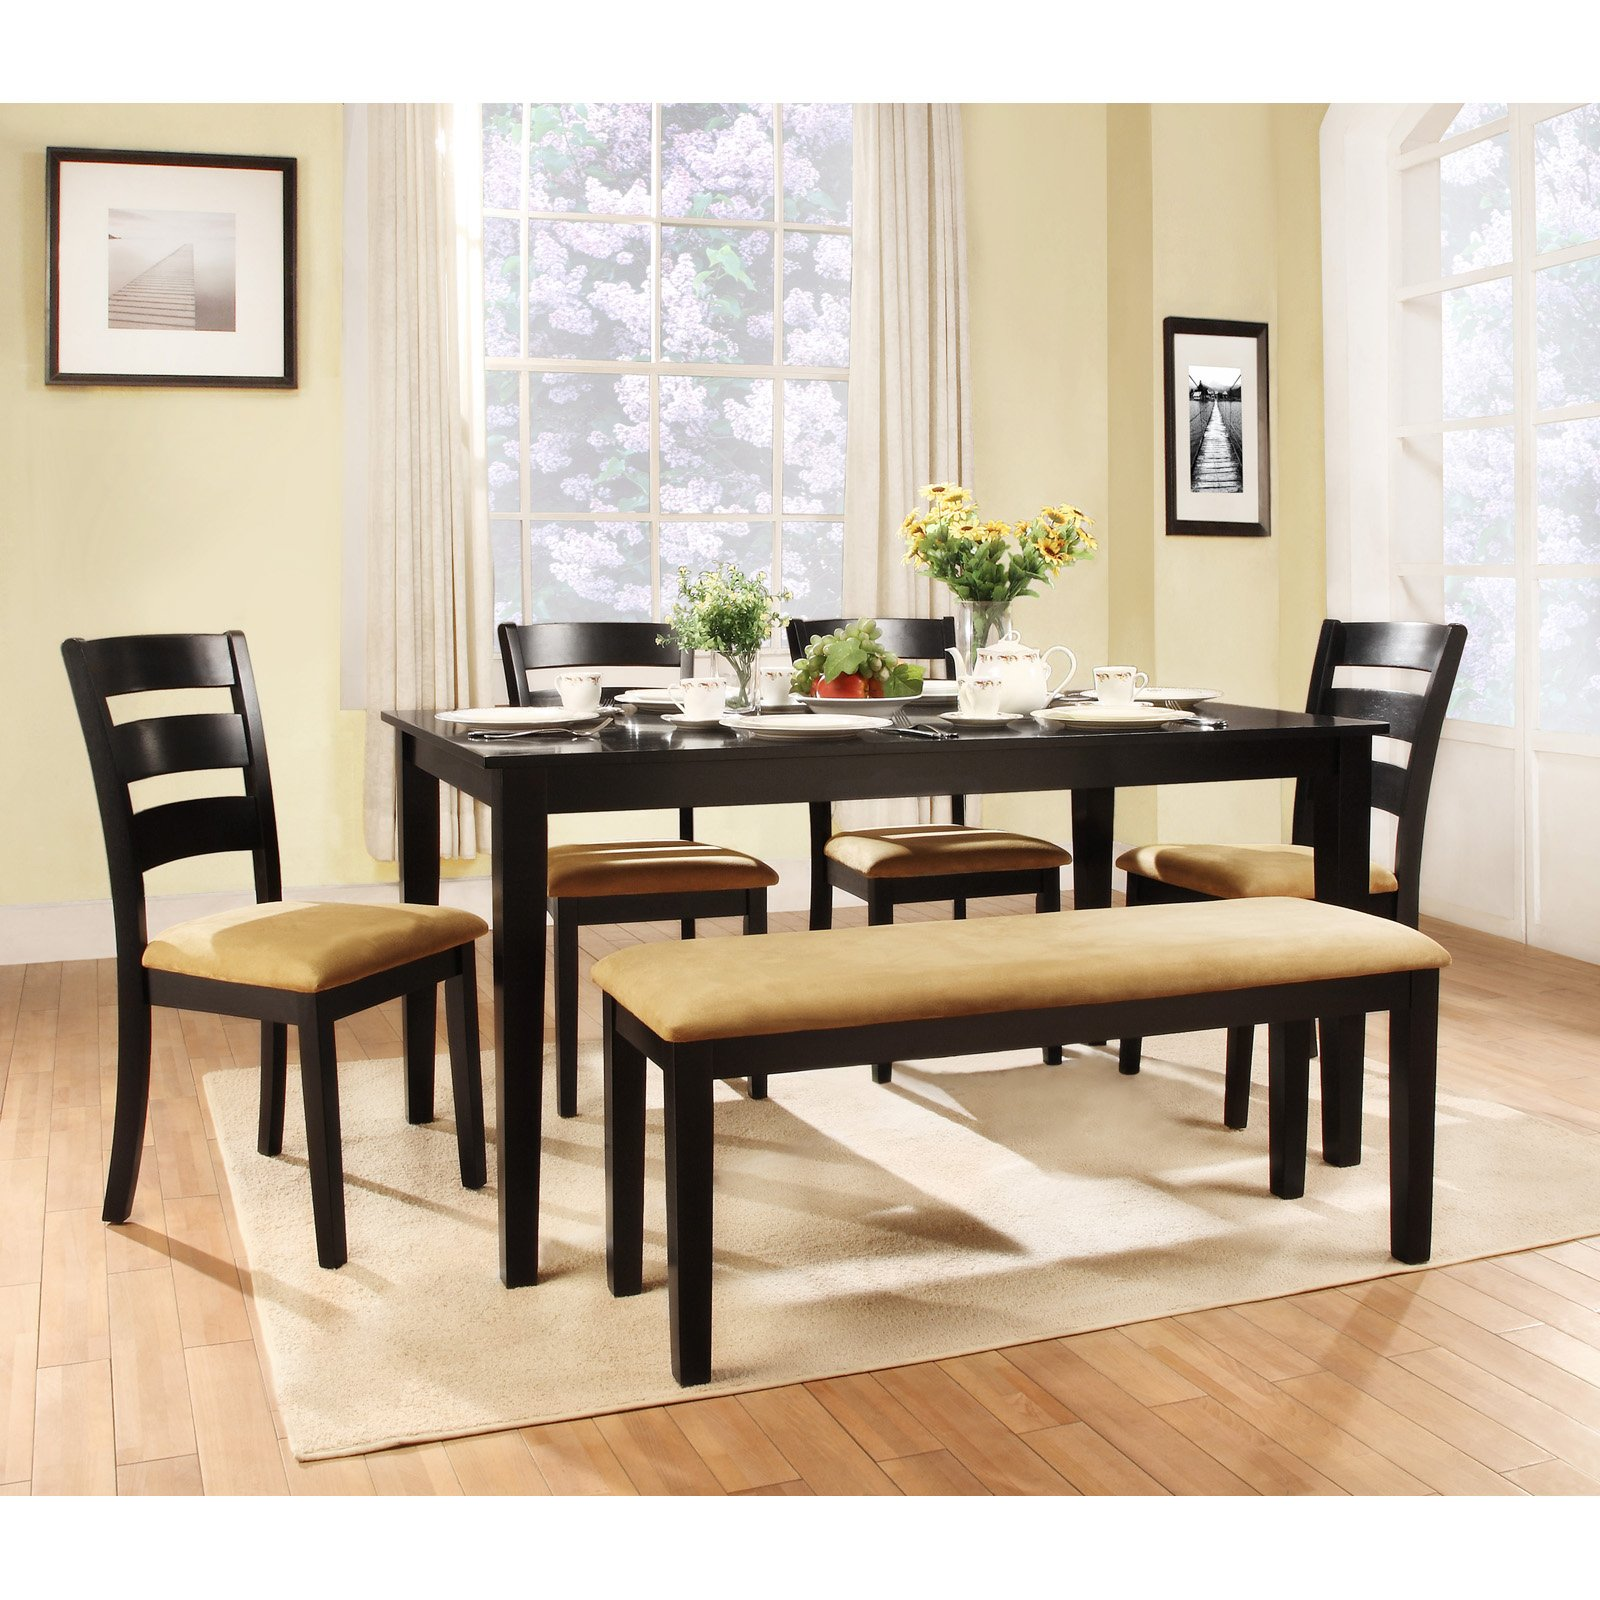 Modern bench style dining table set ideas homesfeed Contemporary dining room sets with benches